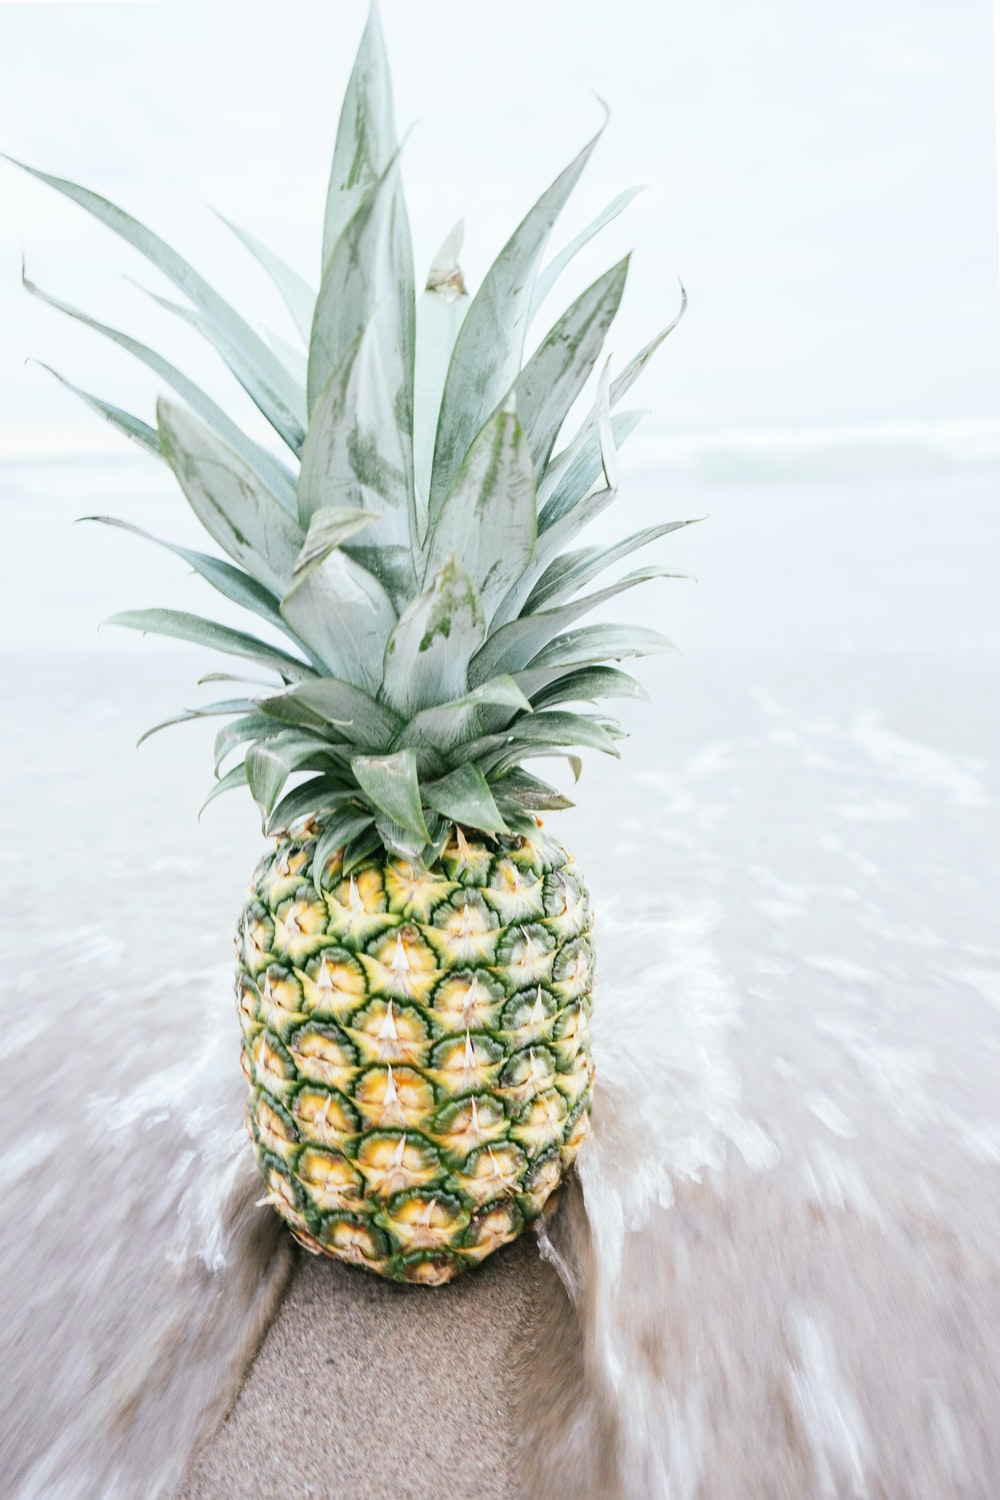 pineapple on shore